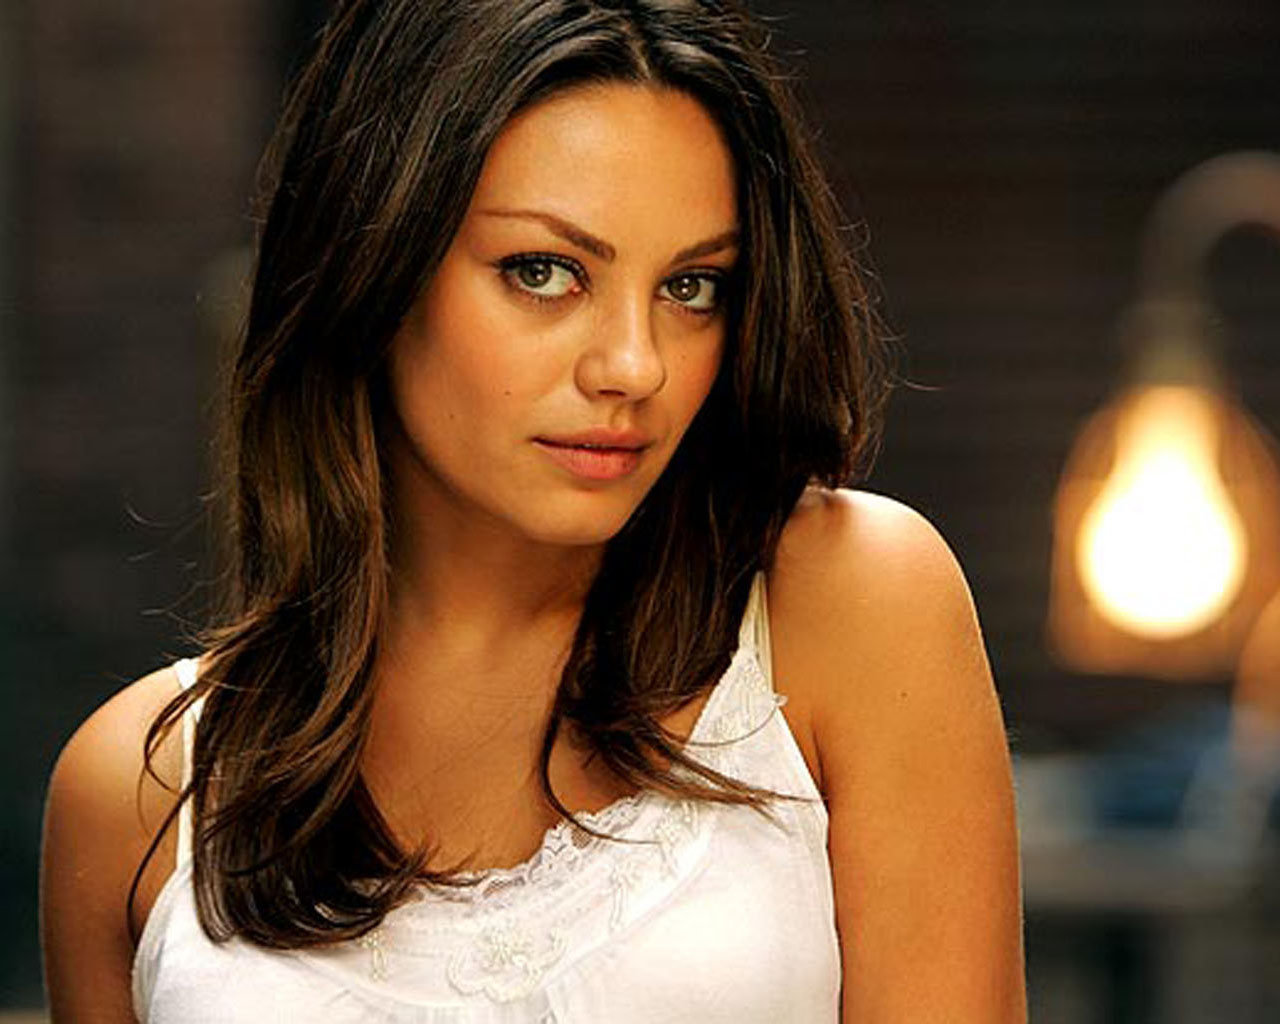 I freakin wish Mila Kunis was my ex. Except I'd never want to screw that  up. Maybe that's why we fail, I love too much.